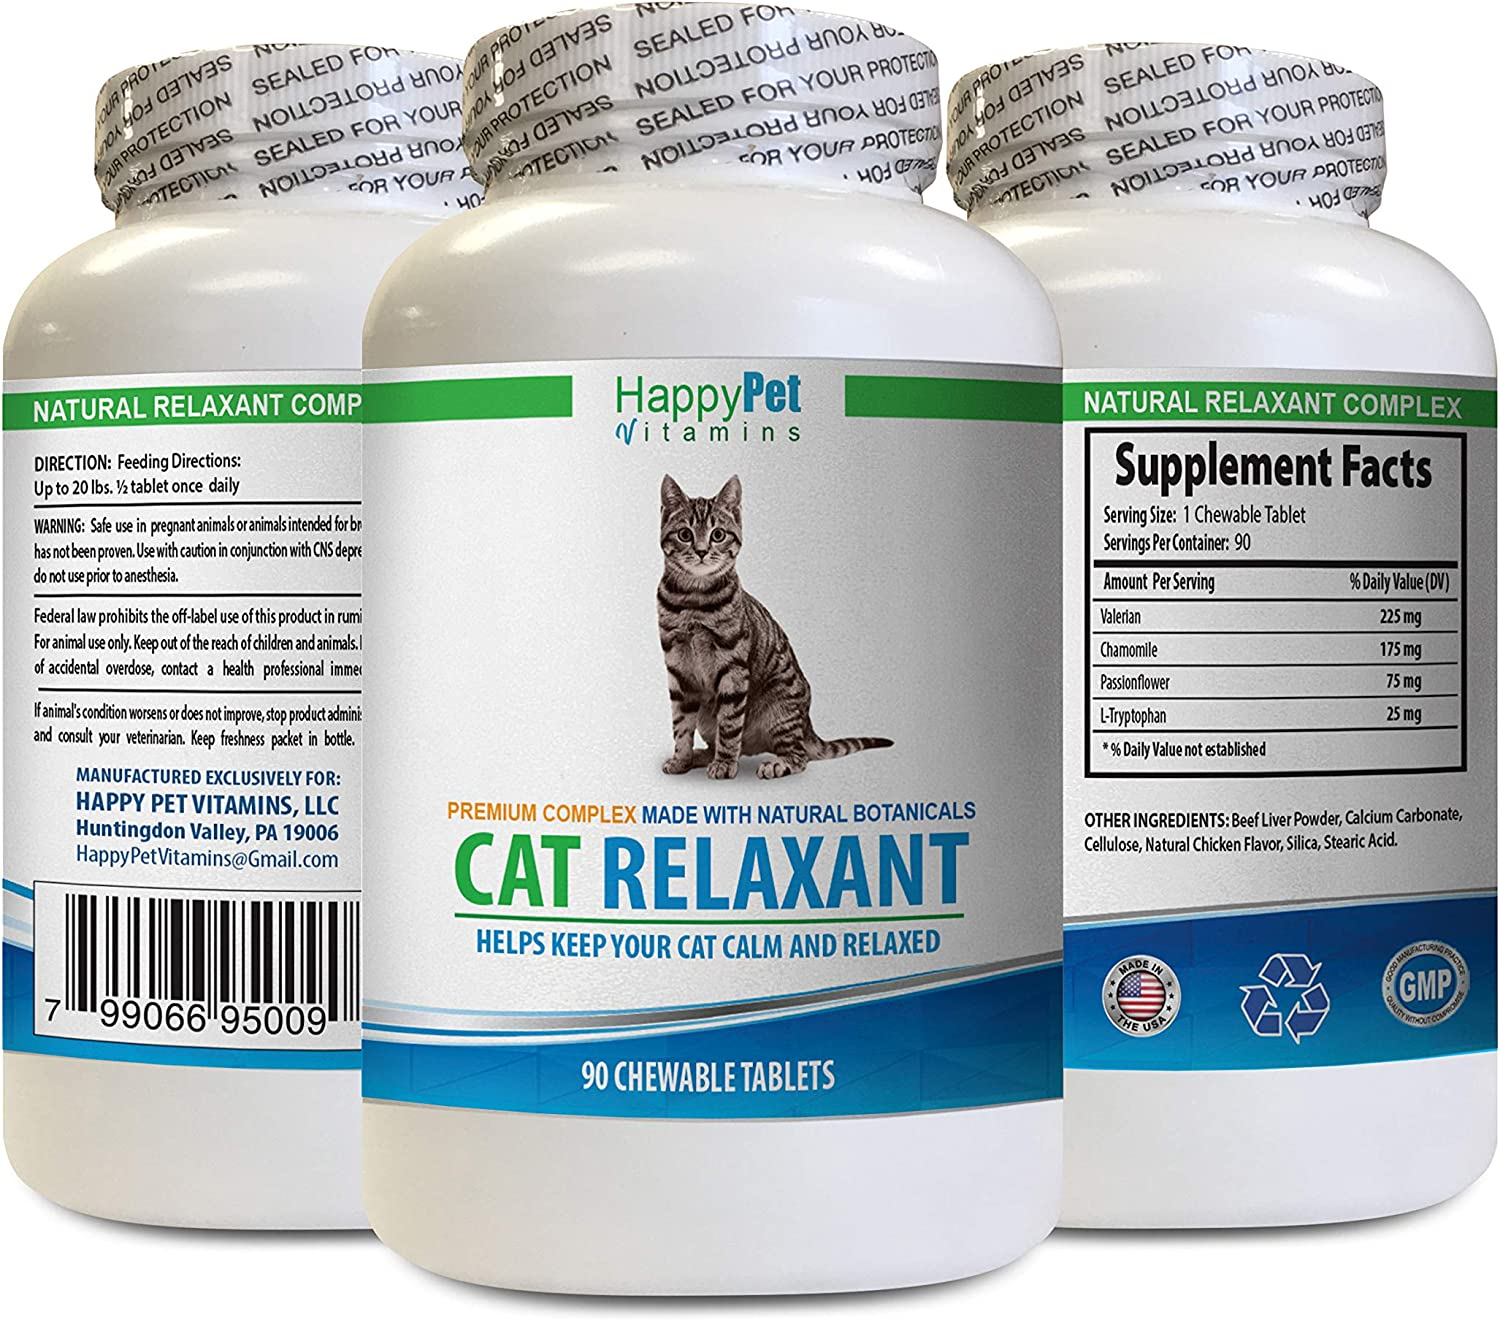 HAPPY PET VITAMINS LLC cat Anxiety - CAT Relaxant - Anxiety and Stress Relief - Natural Calmer - Premium - tryptophan cat Food - 1 Bottle (90 Chewable Tabs)